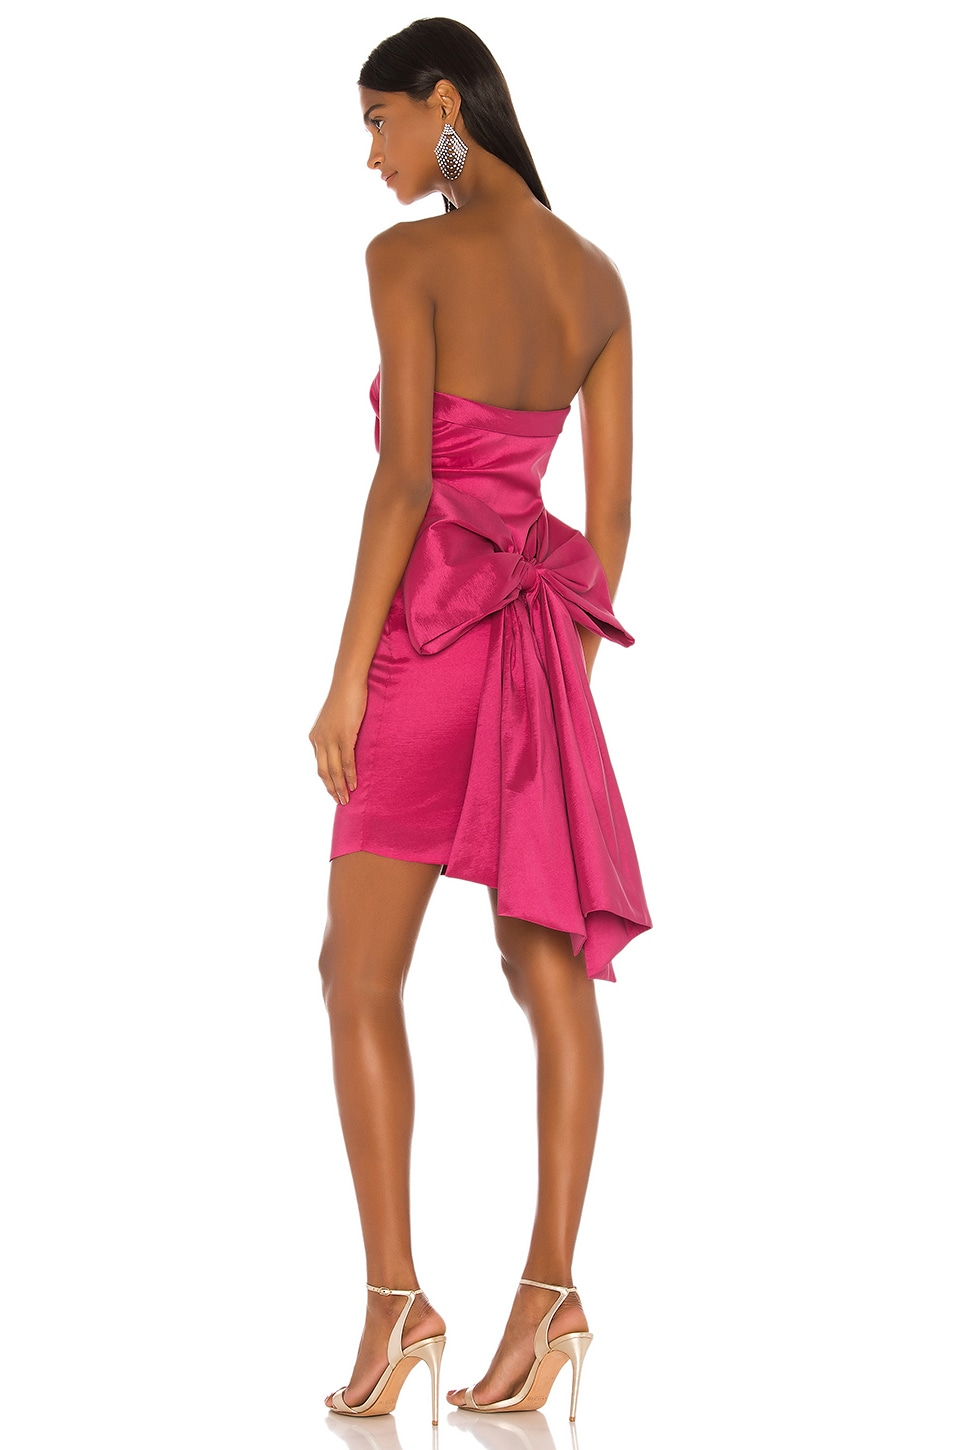 LIKELY Merino Dress in Fuchsia